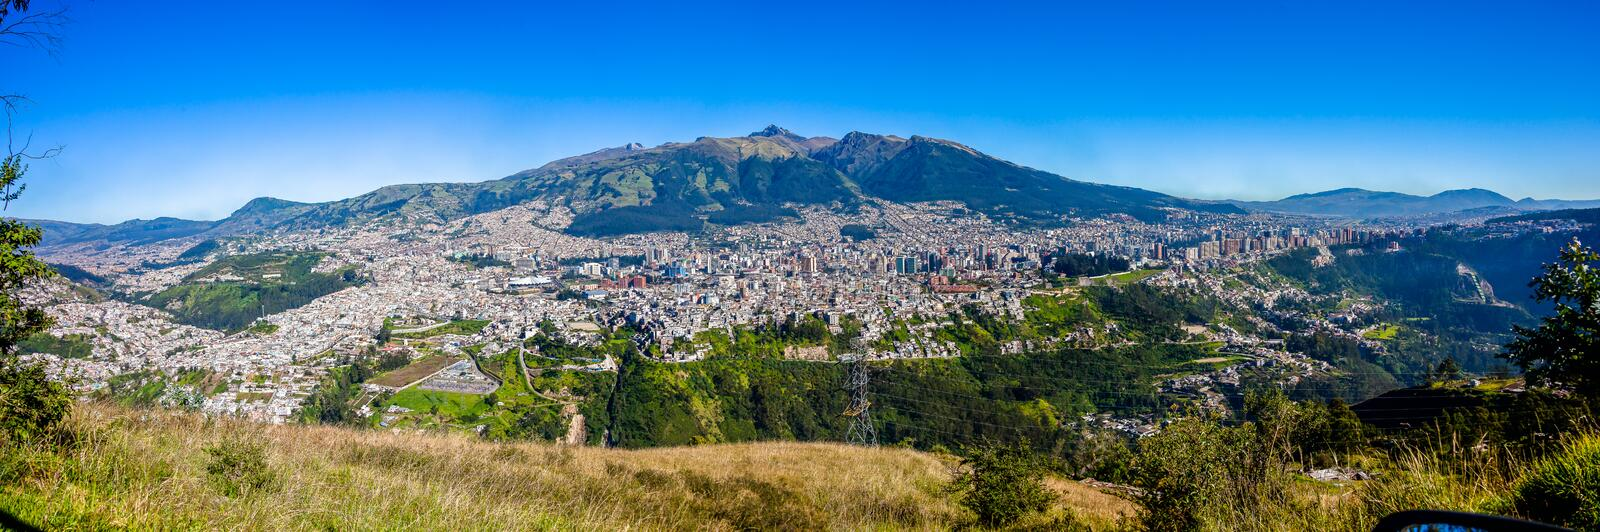 Panorama de Quito, Equateur photographie stock